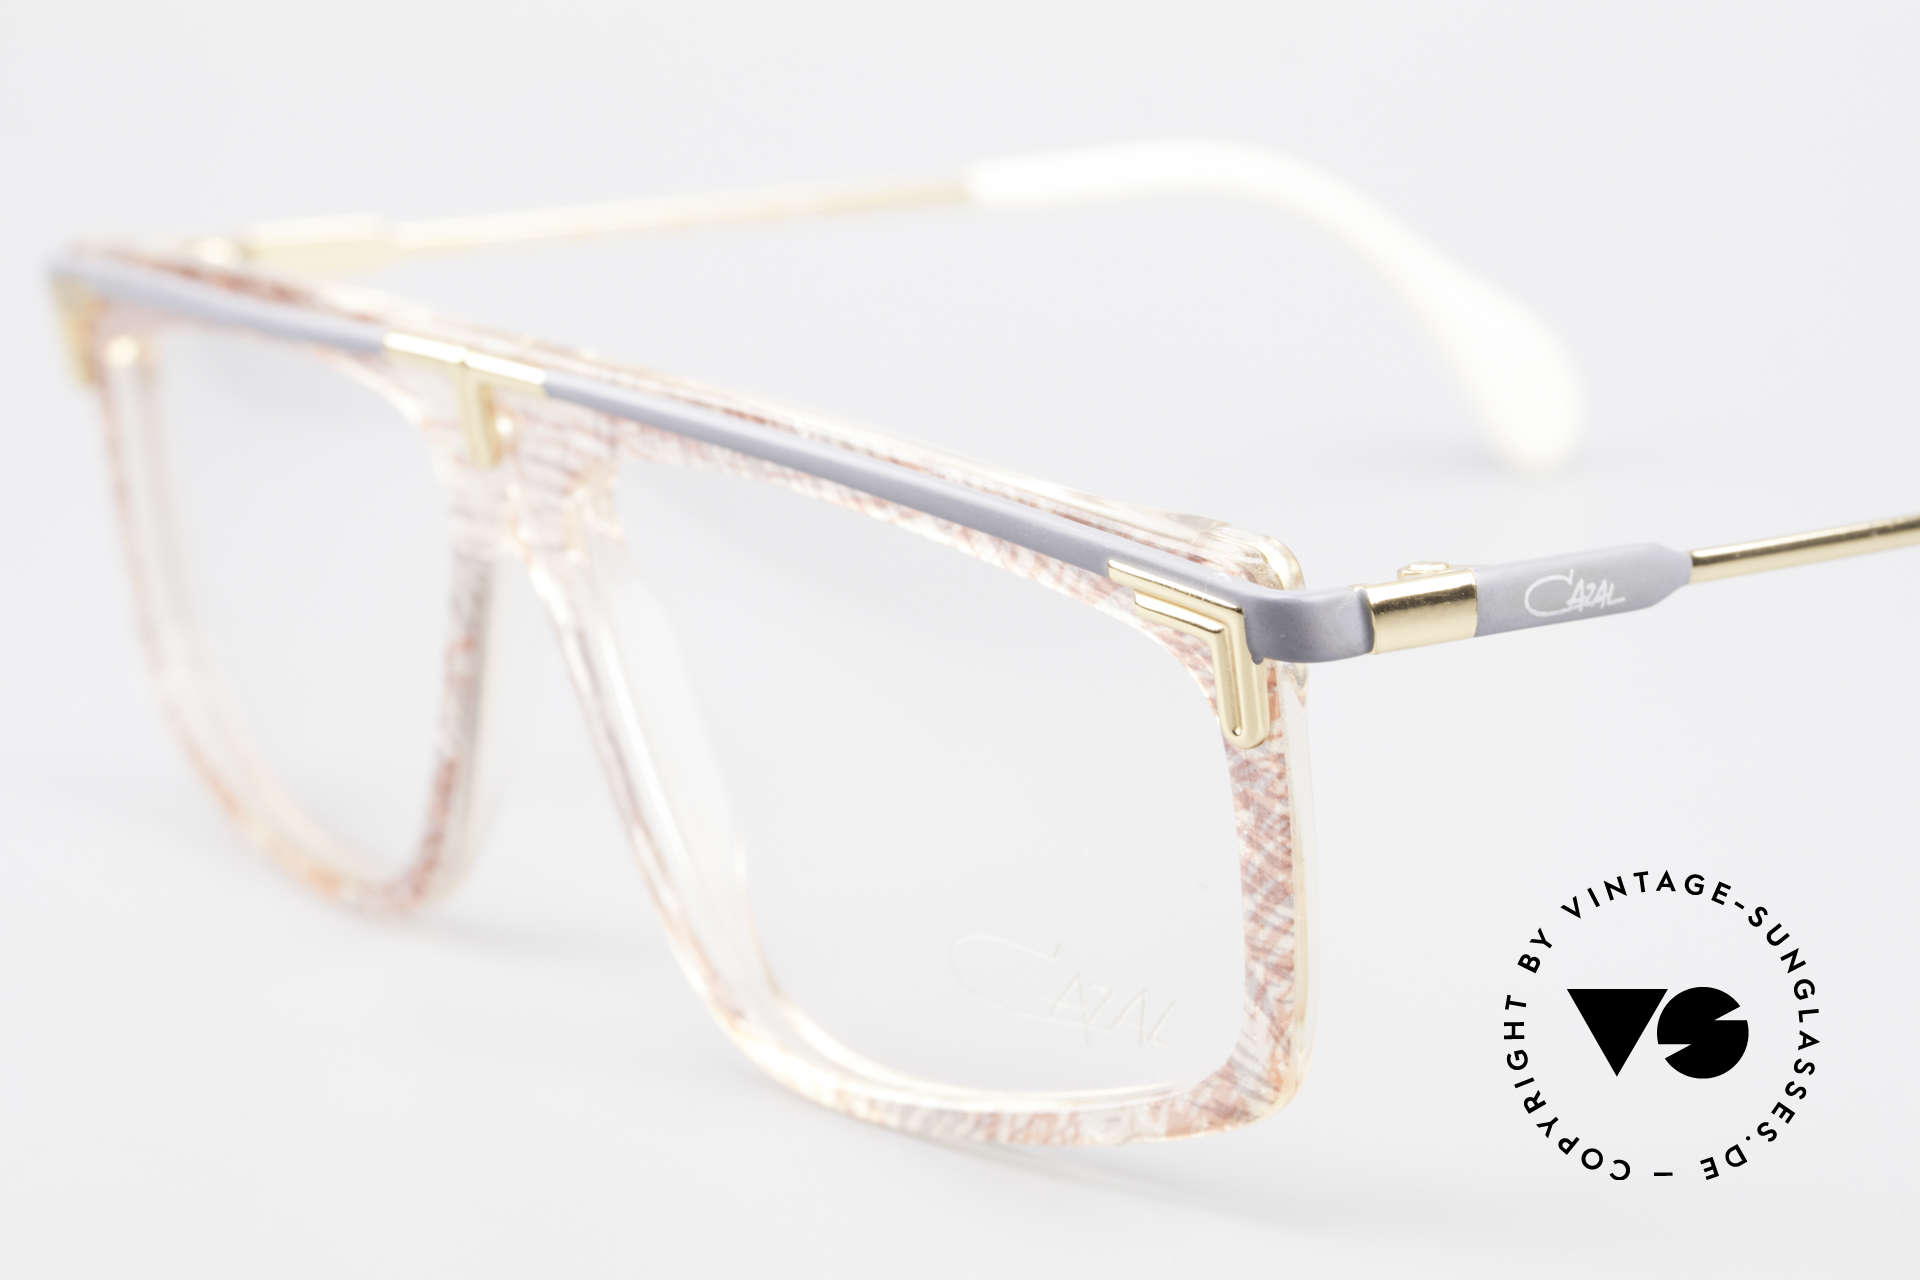 Cazal 190 Rare Old Vintage Frame HipHop, unworn (like all our rare vintage 80's eyewear by Cazal), Made for Men and Women